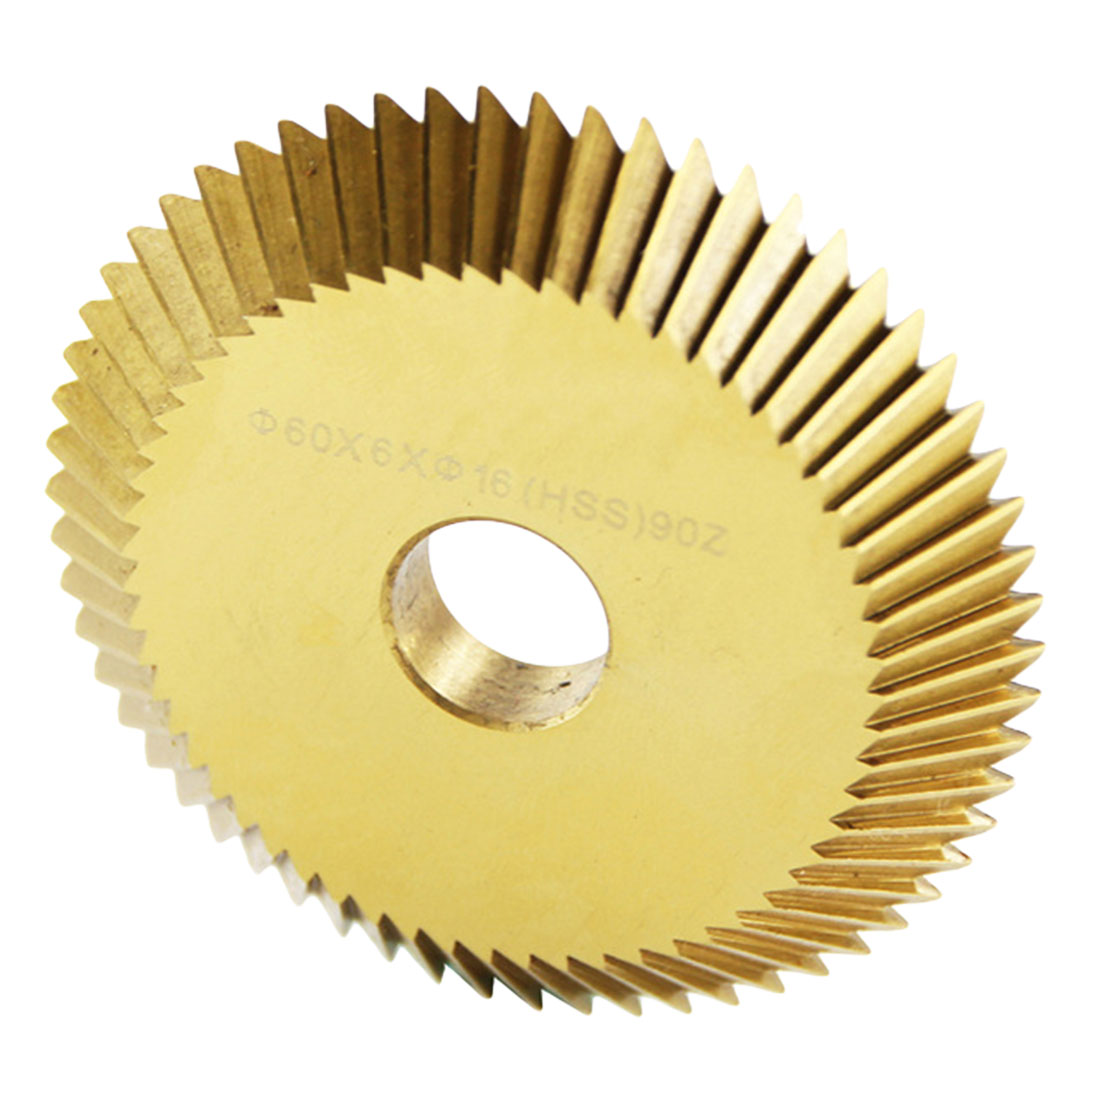 Key Machine Disk Cutter HSS Cutting Saw Blade 90T Single-sided Tooth For Cutting Machine Titanium Plating 60*6*16mm